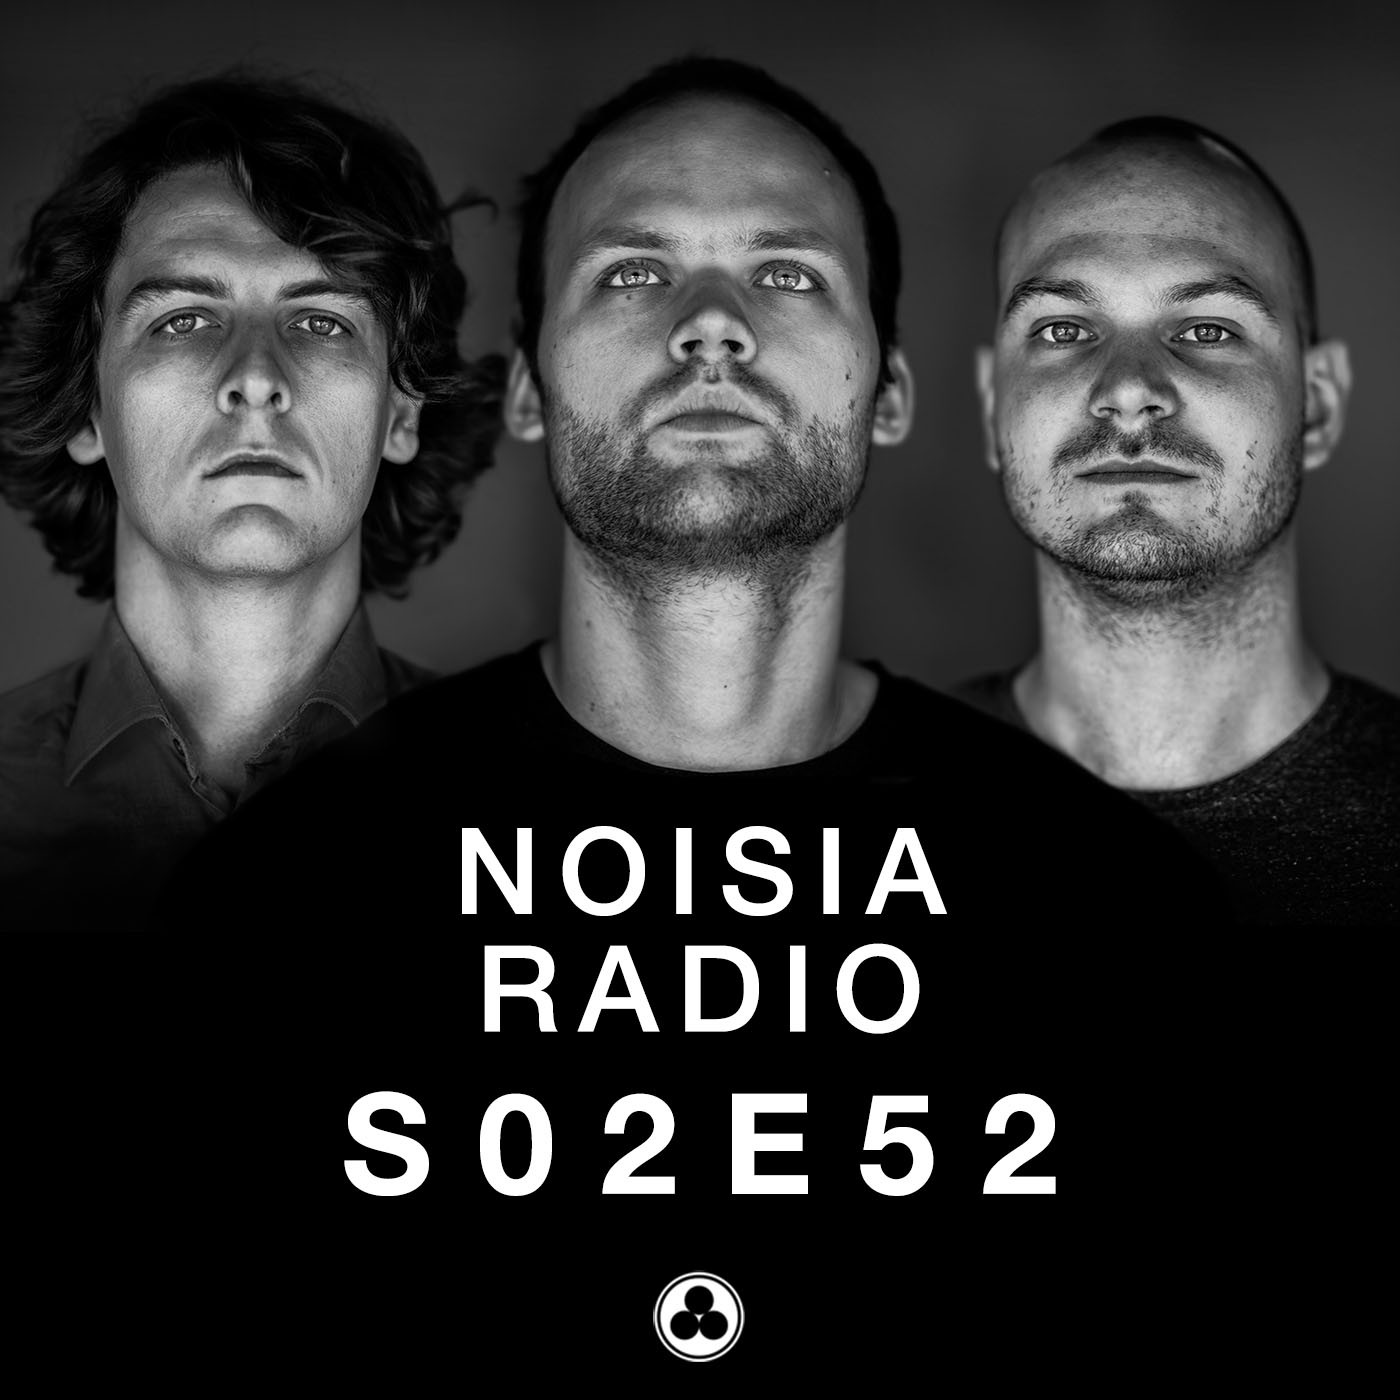 Noisia Radio S02E52